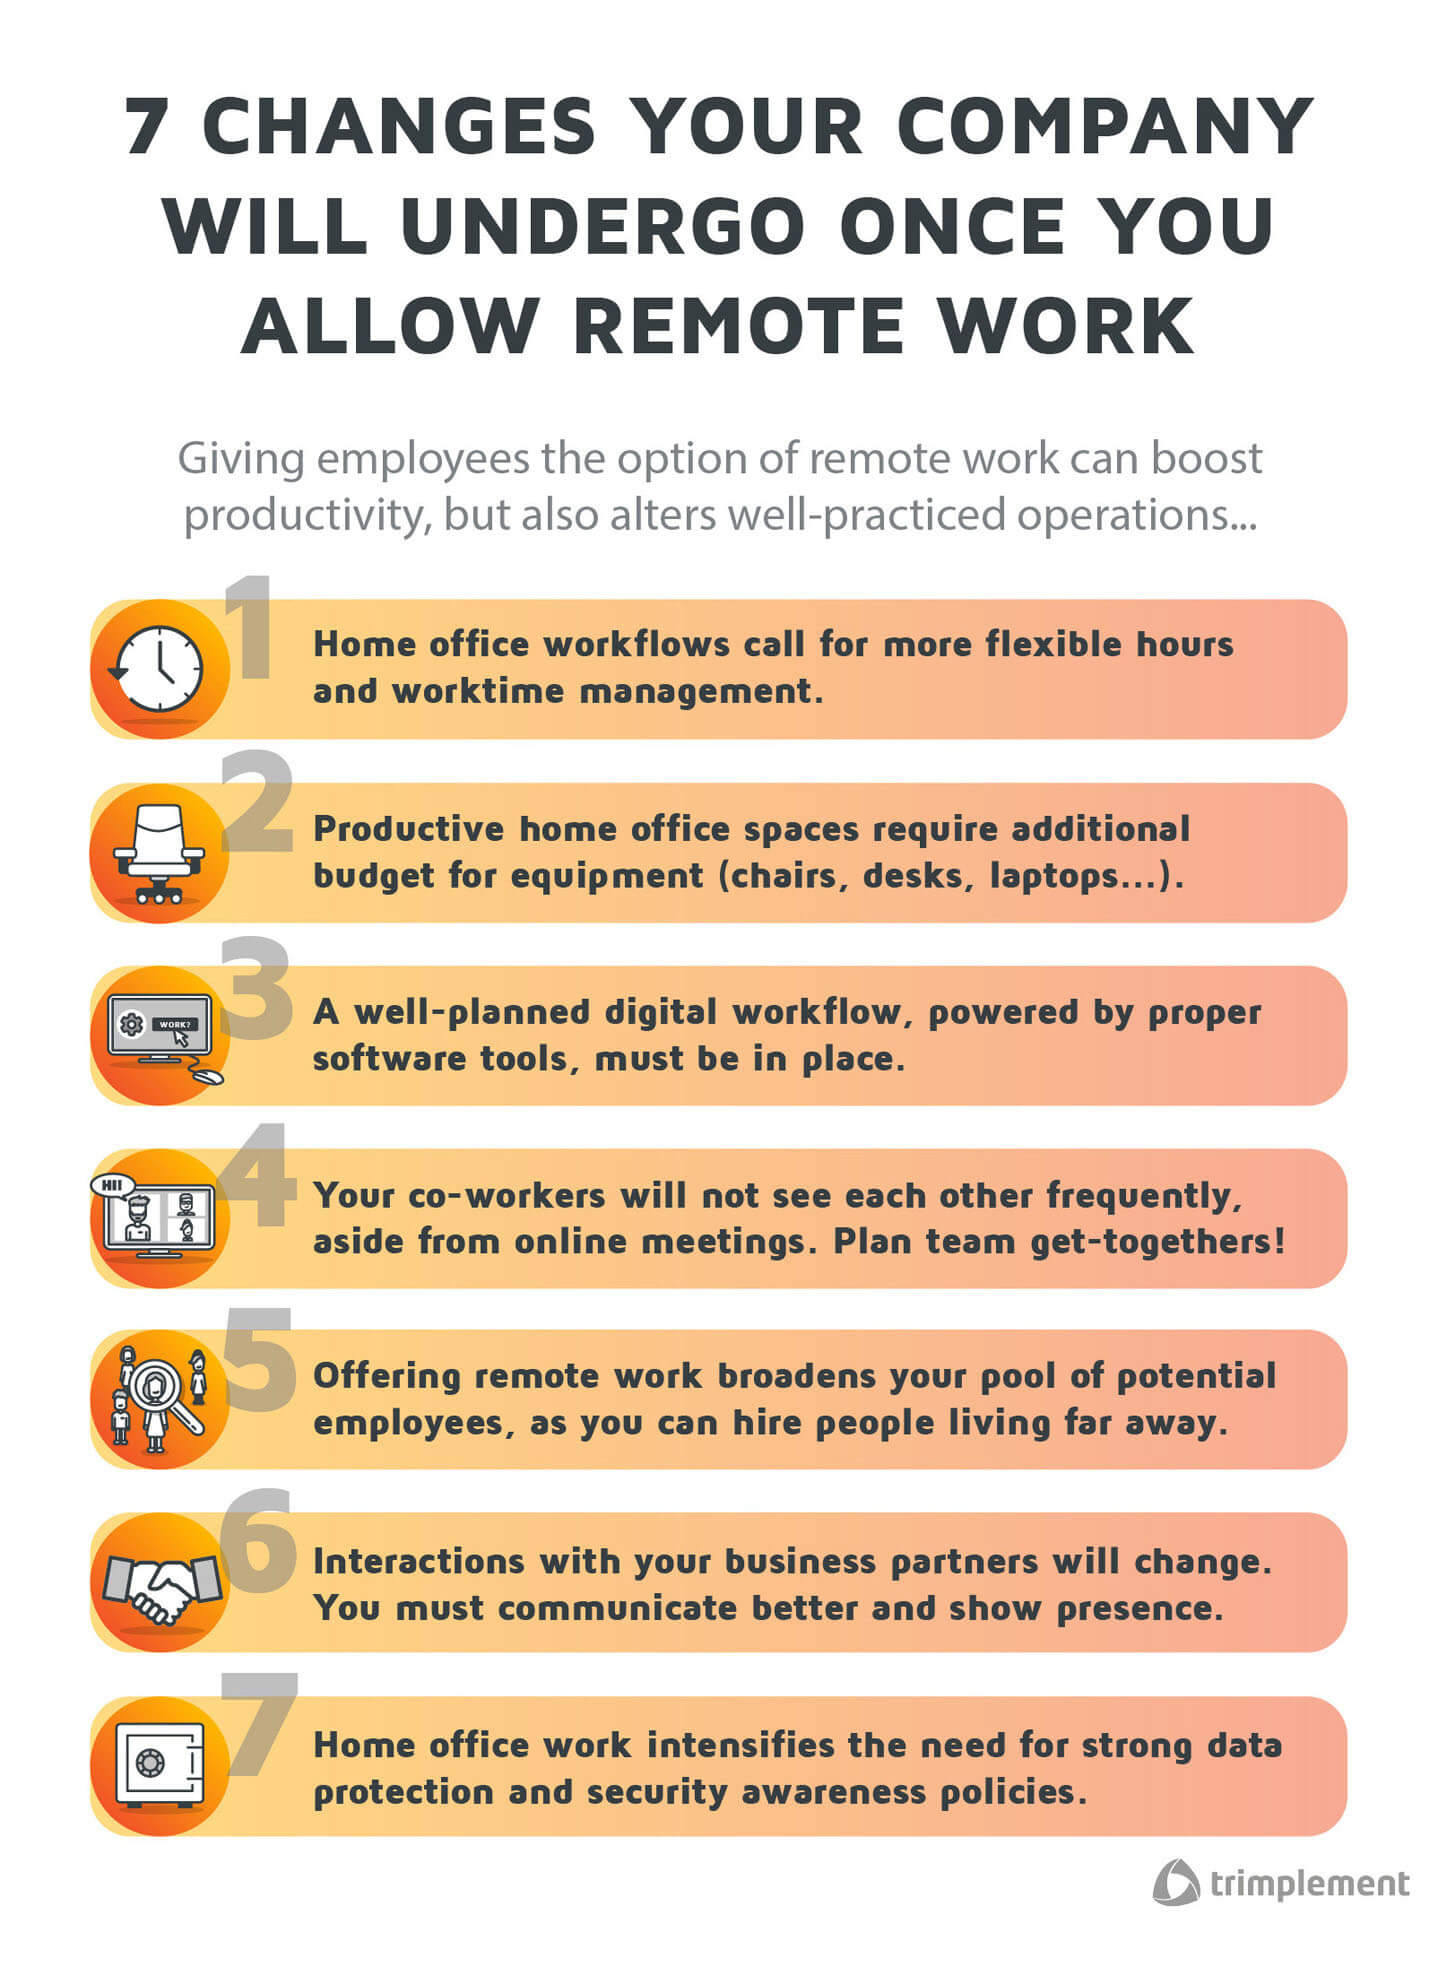 An infographic showing the 7 major changes and challenges, when switching to home office, remote work and telecommuting as a company